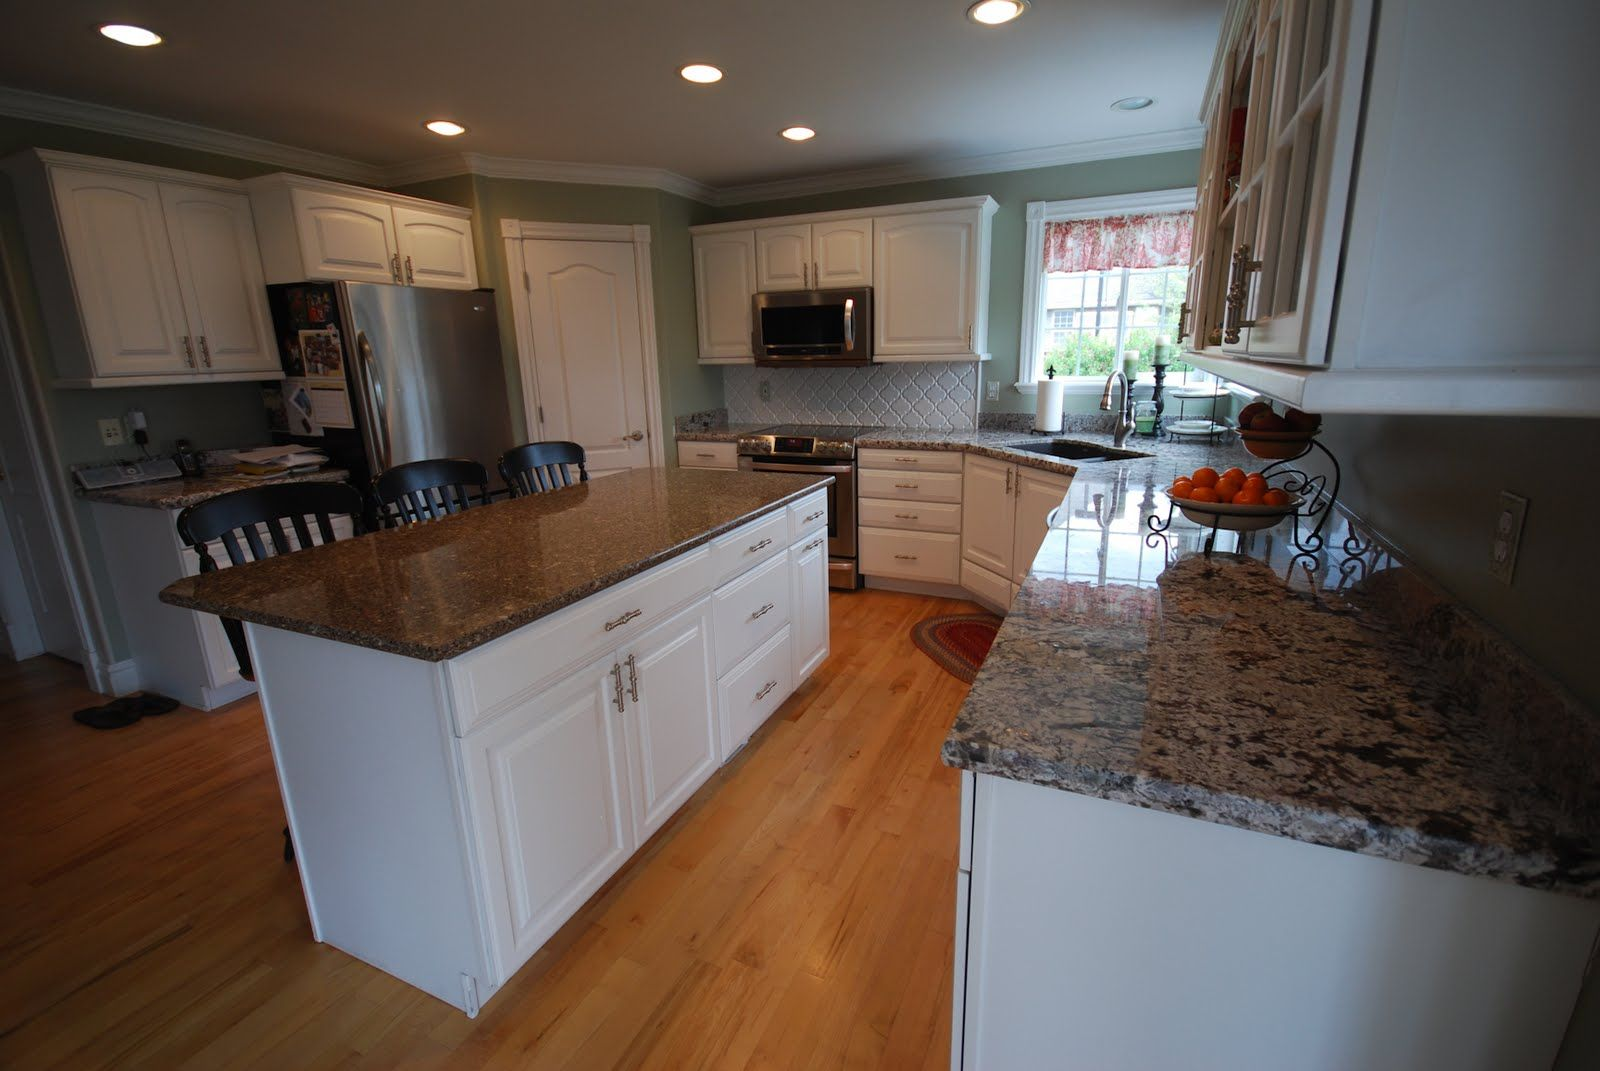 Halstead Cambria quartz and Bianco Antico granite Kitchen